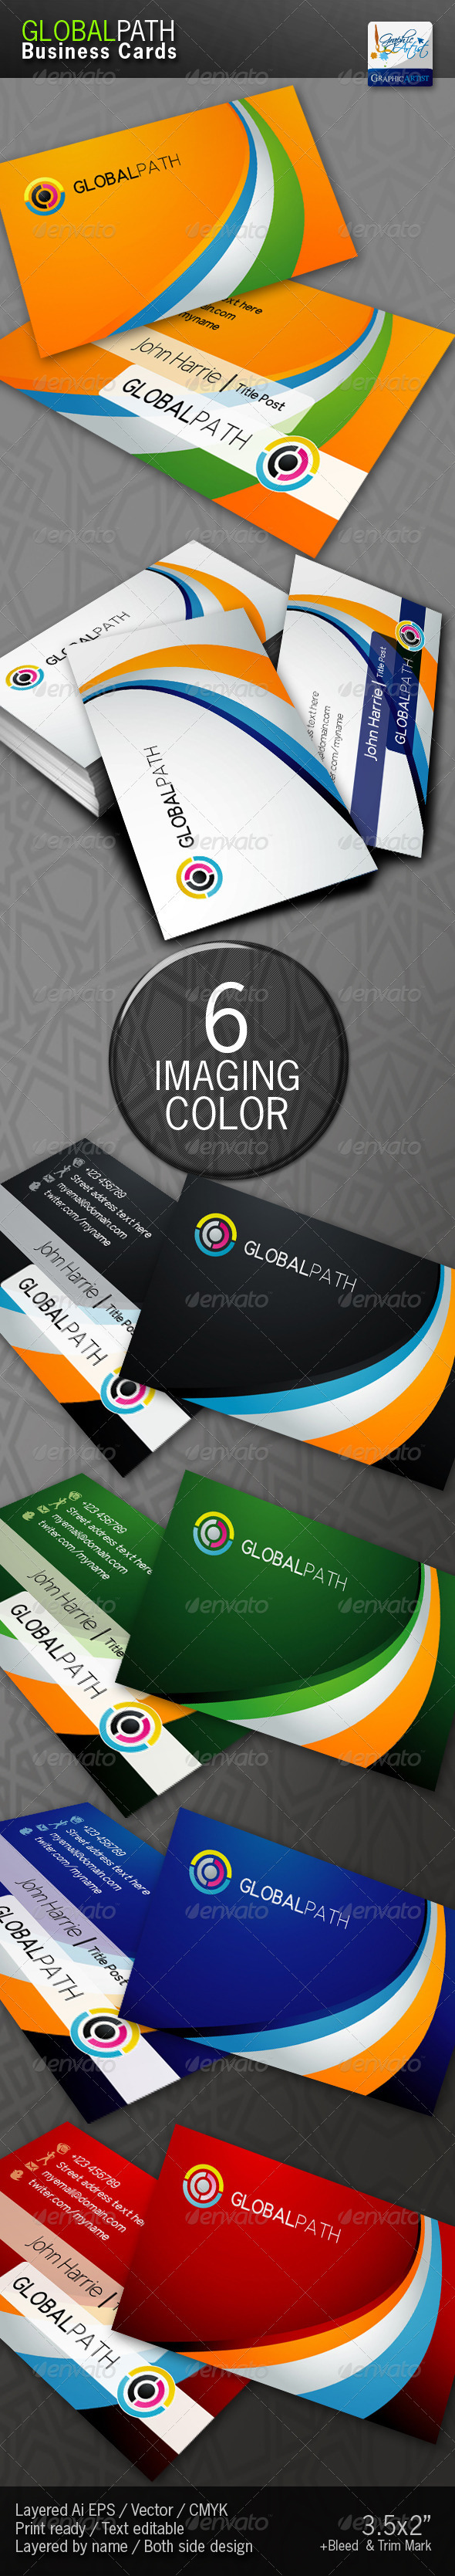 GlobalPath Business Cards - Corporate Business Cards